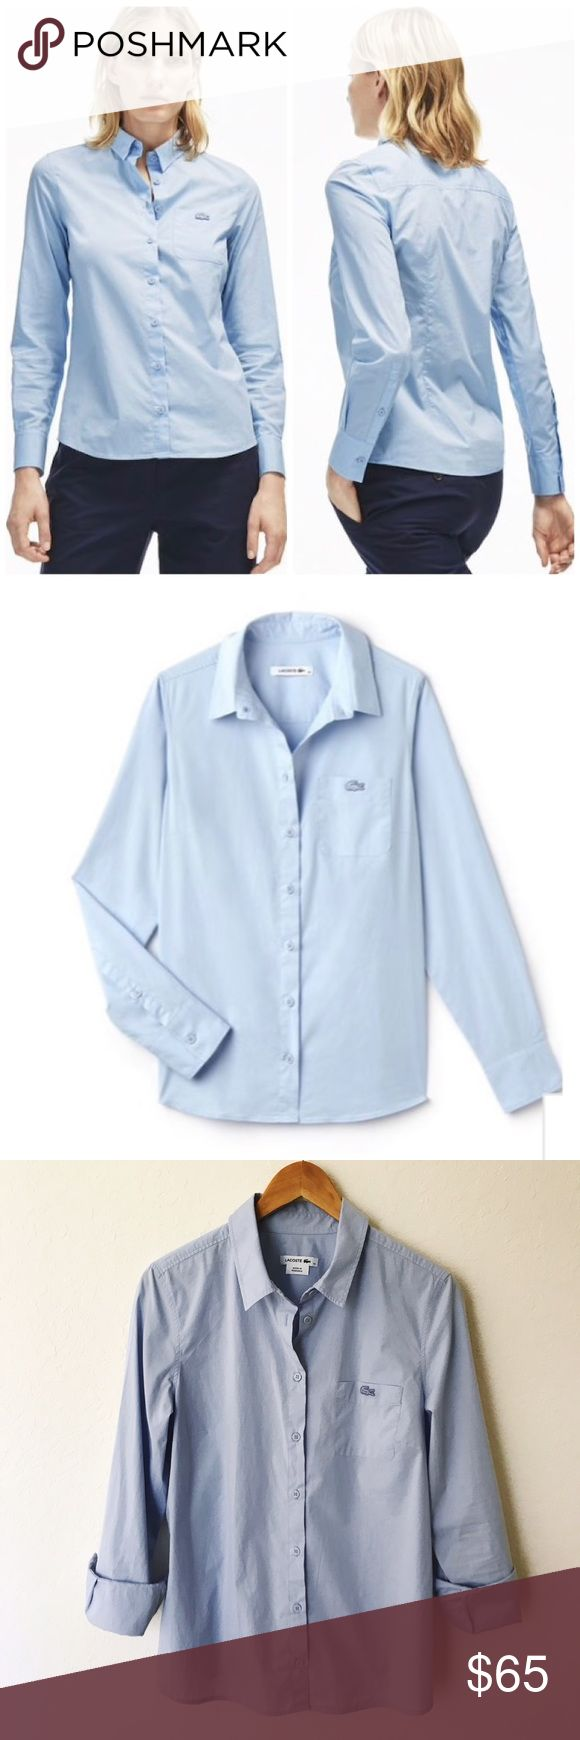 "Lacoste Light Blue Button Down Long Sleeve Shirt Excellent preowned condition, baby blue professional collar work shirt. One pocket on the chest with Lacoste logo. Approximate measurements when laid flat: 21"" Bust, 27"" Length, 20"" sleeve length from armpit to hem. Based on Lacoste size chart this would be an XL or size 12. Lacoste Tops Button Down Shirts"